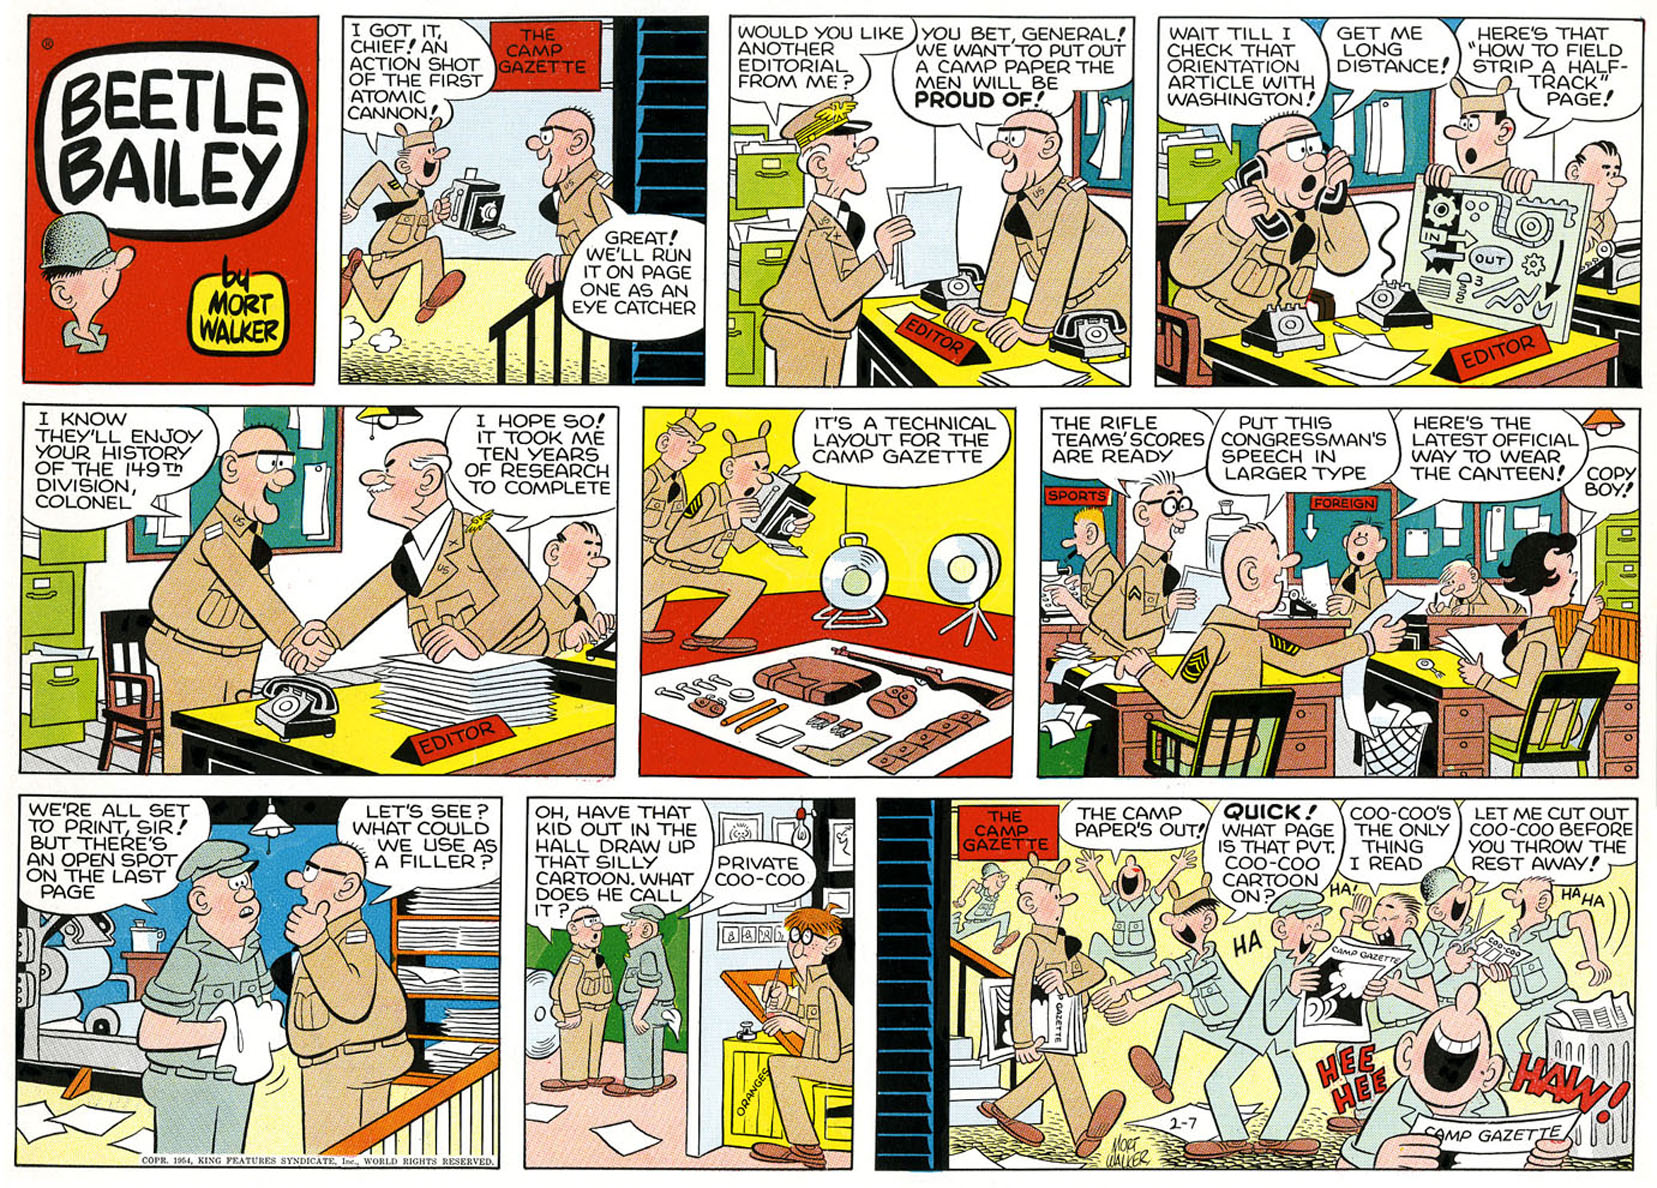 Beetle Bailey Sunday page, color proof, February 7, 1954.